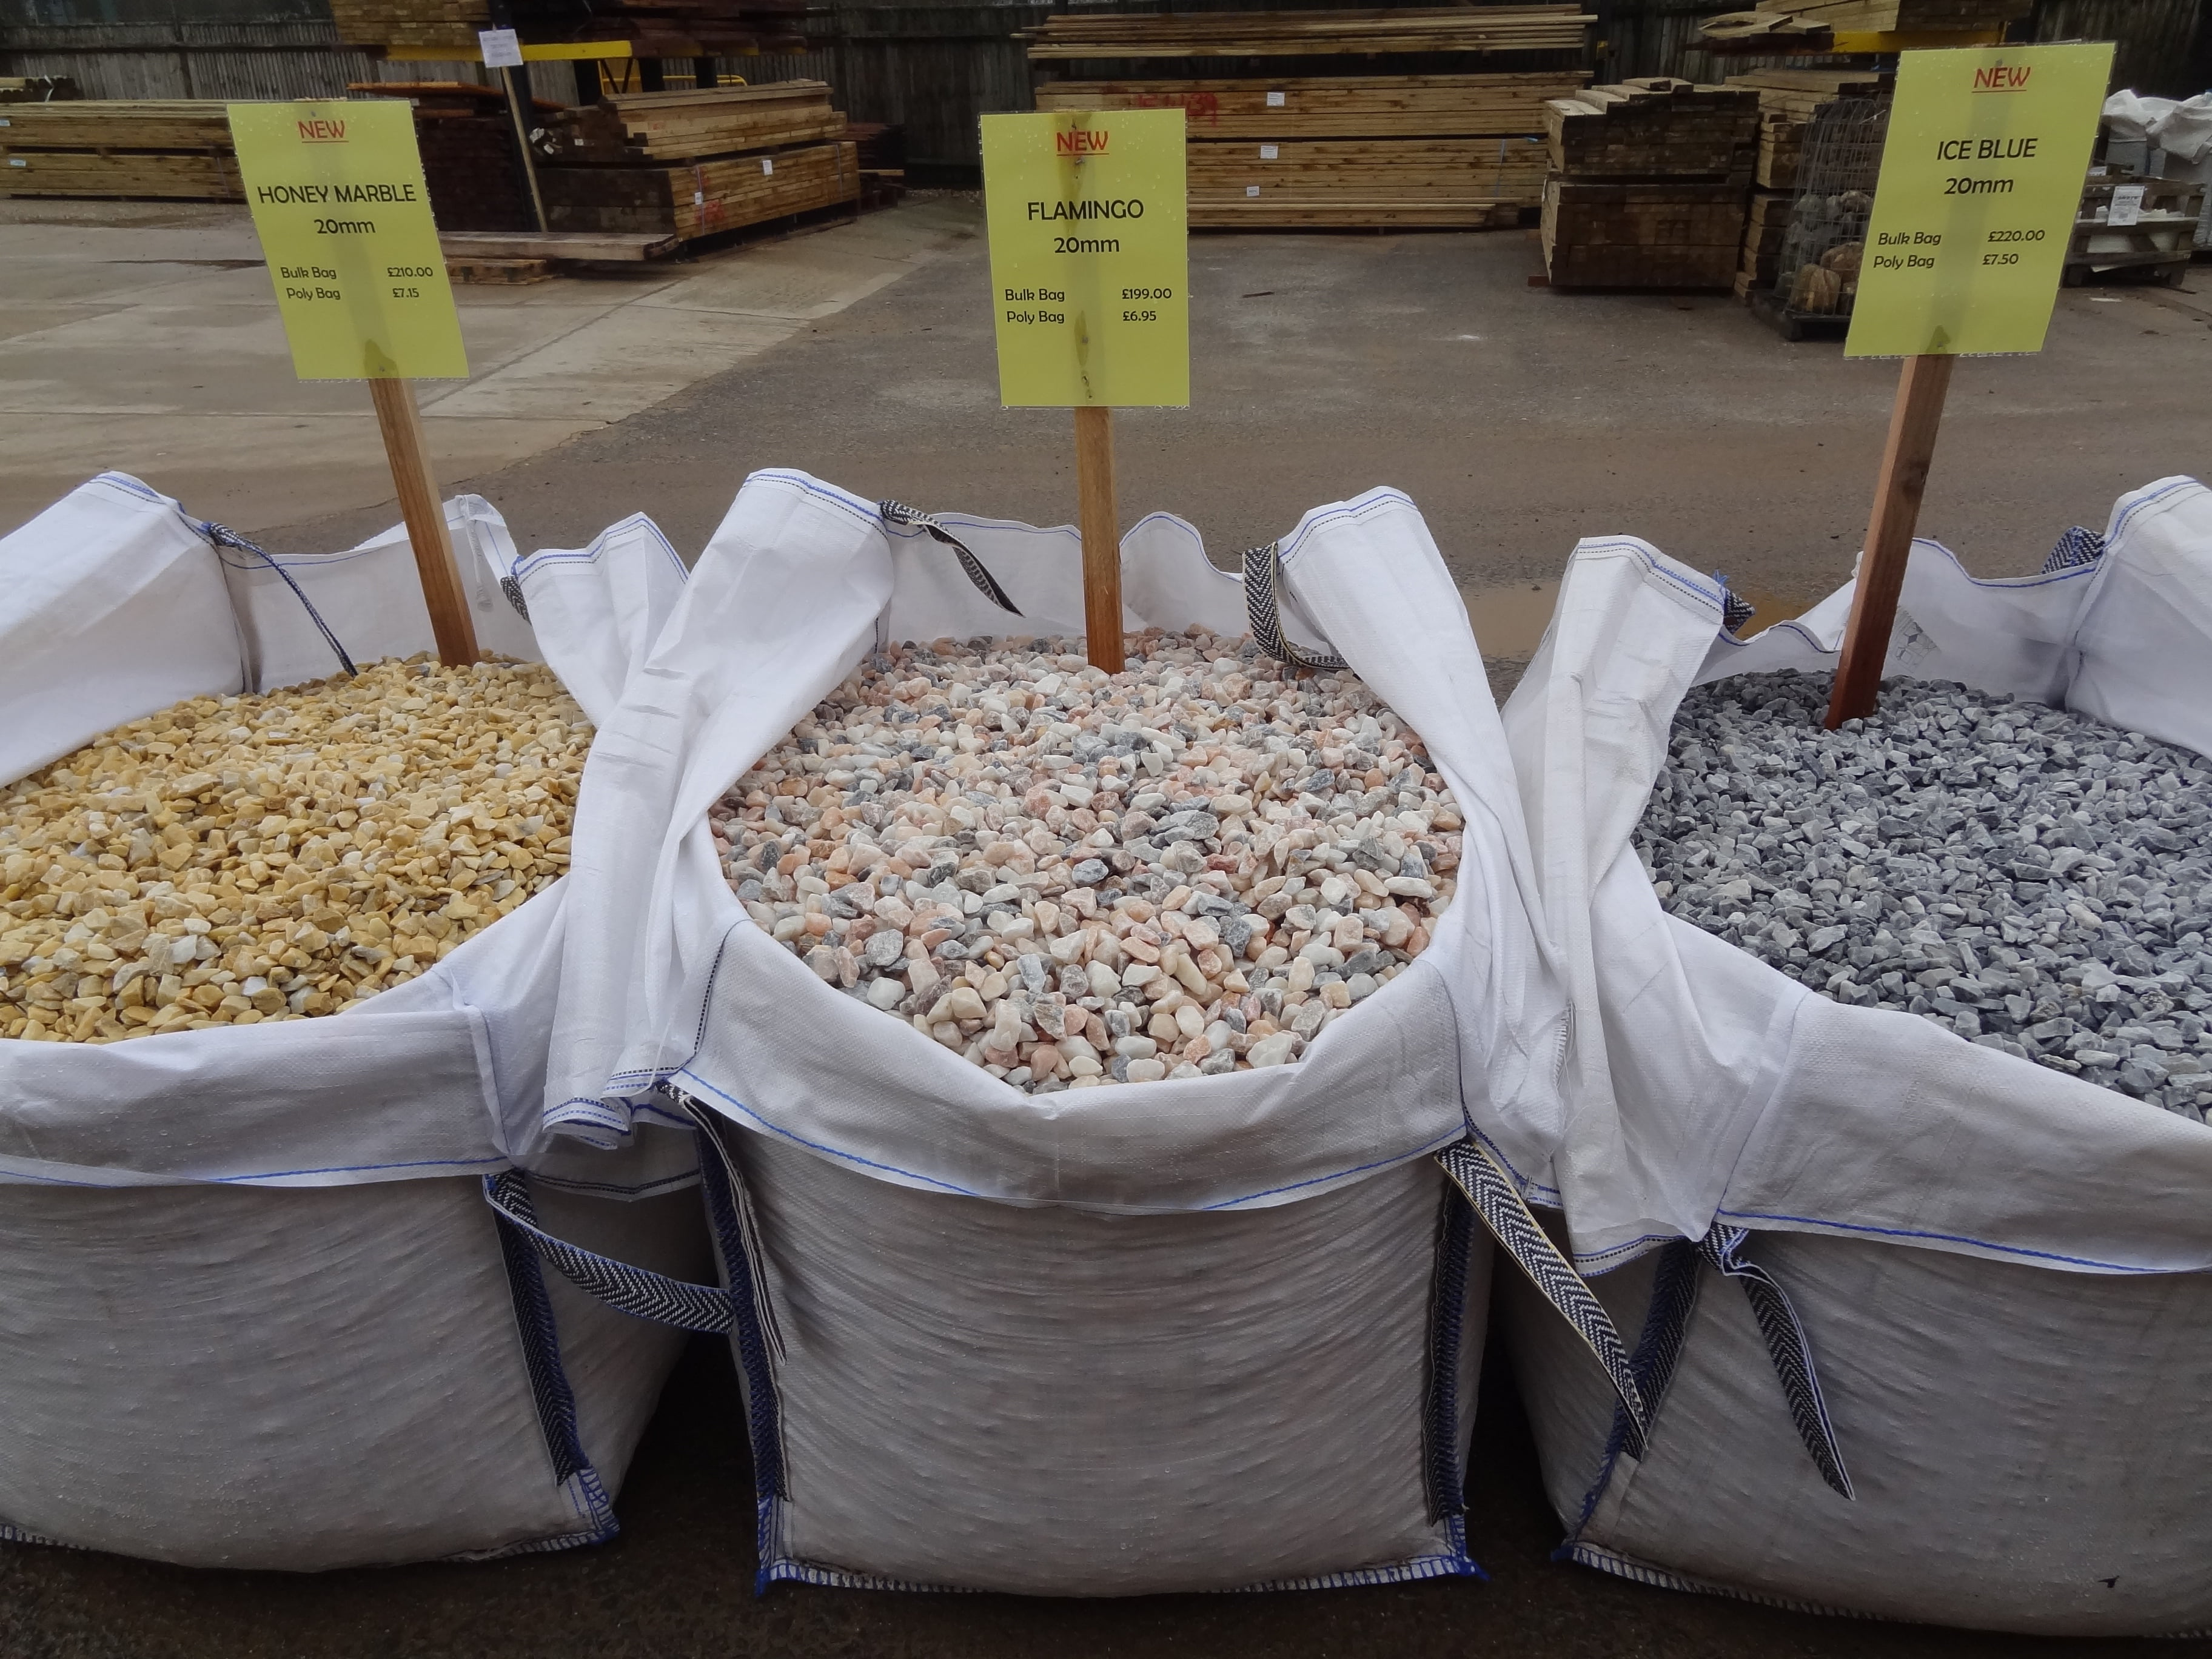 New Marble 20mm Chippings.  From left to right; Honey, Flamingo, Ice Blue